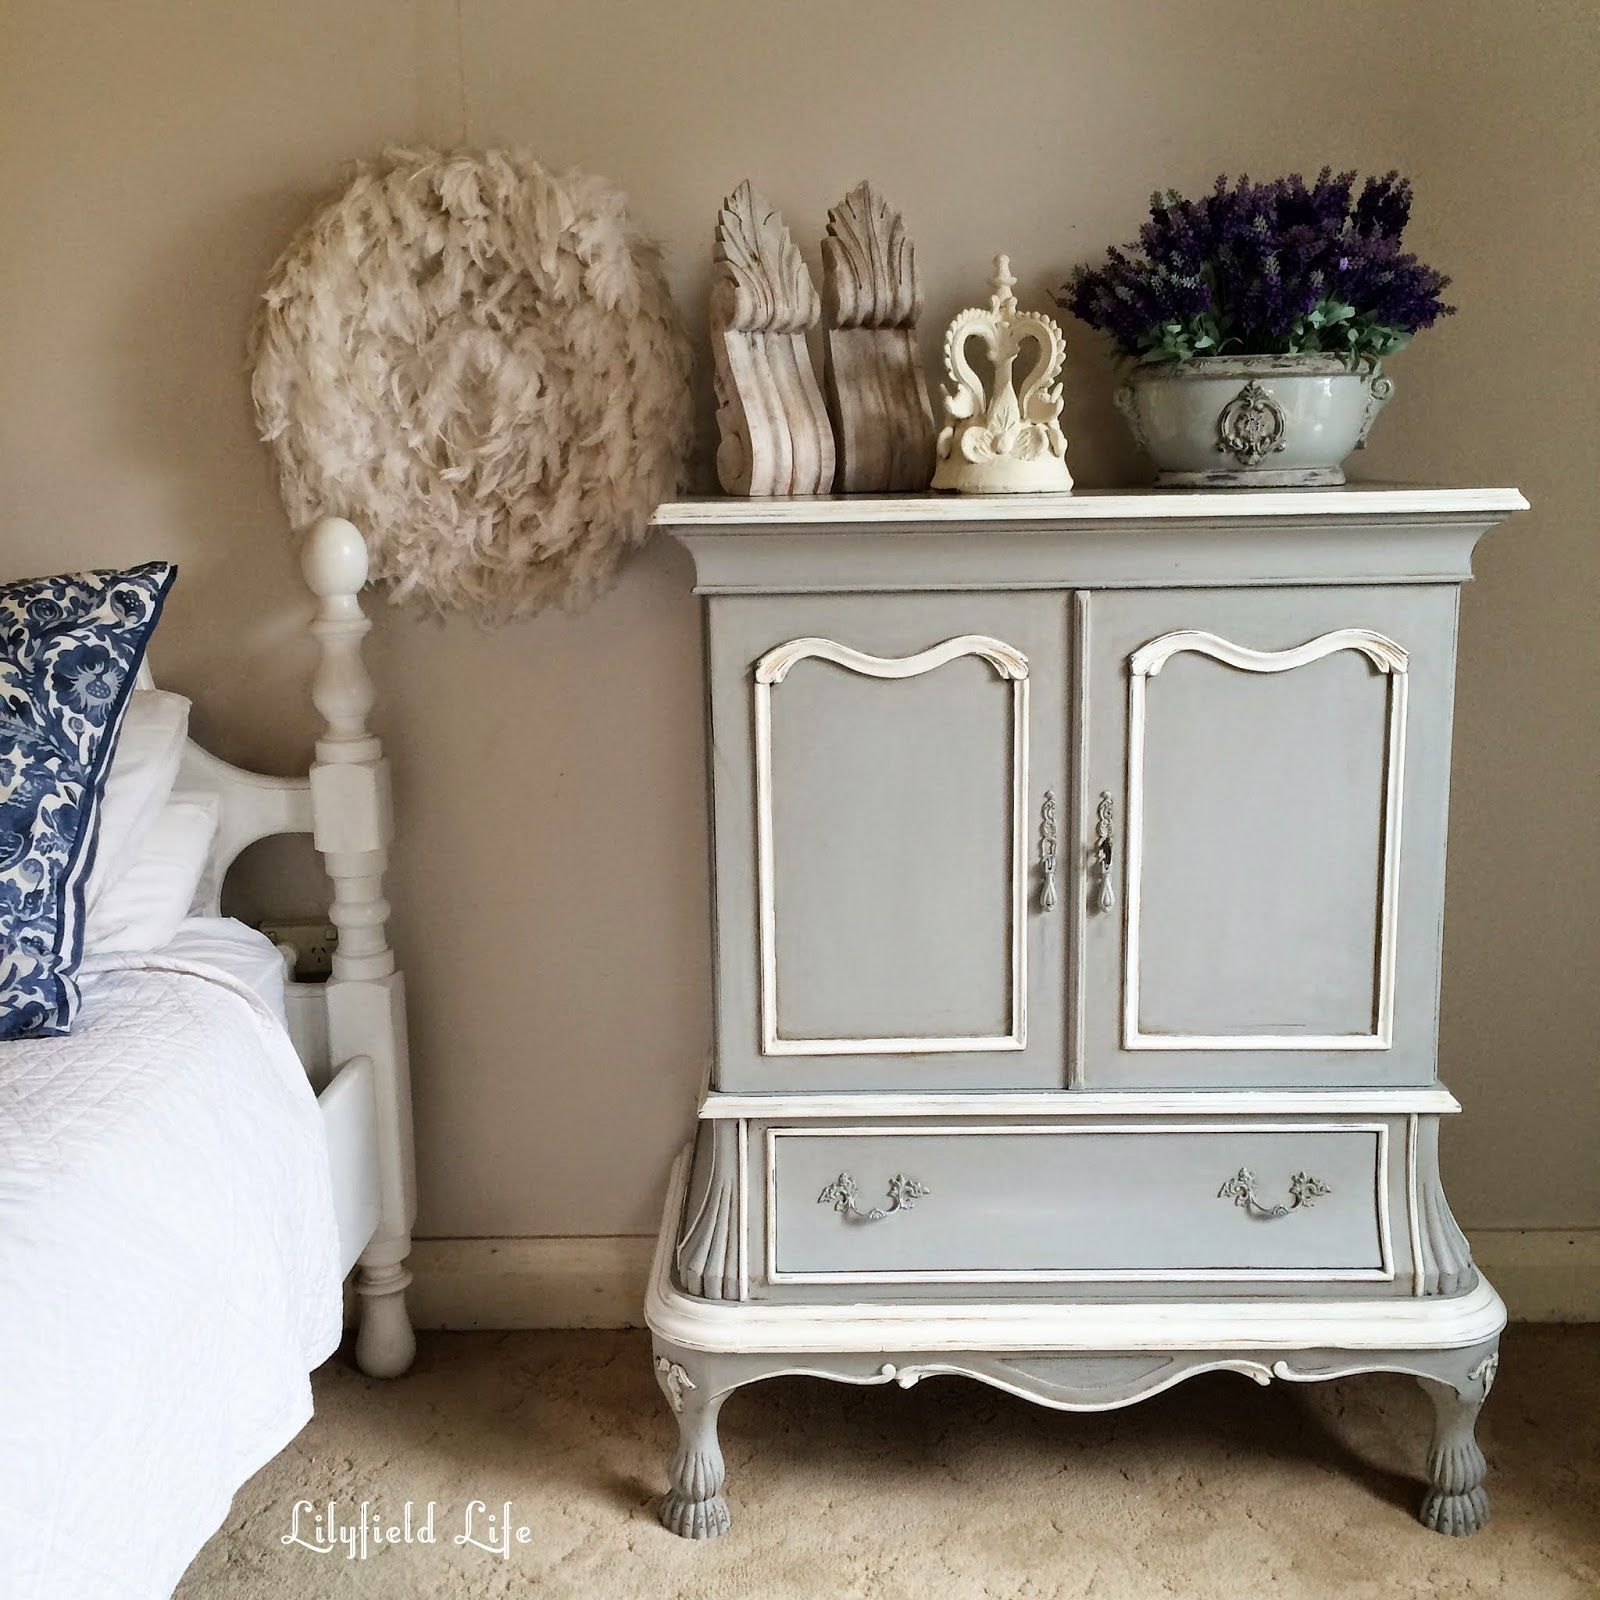 TV Cabinet turned French Armoire by Lilyfield Life | Lilyfield ...